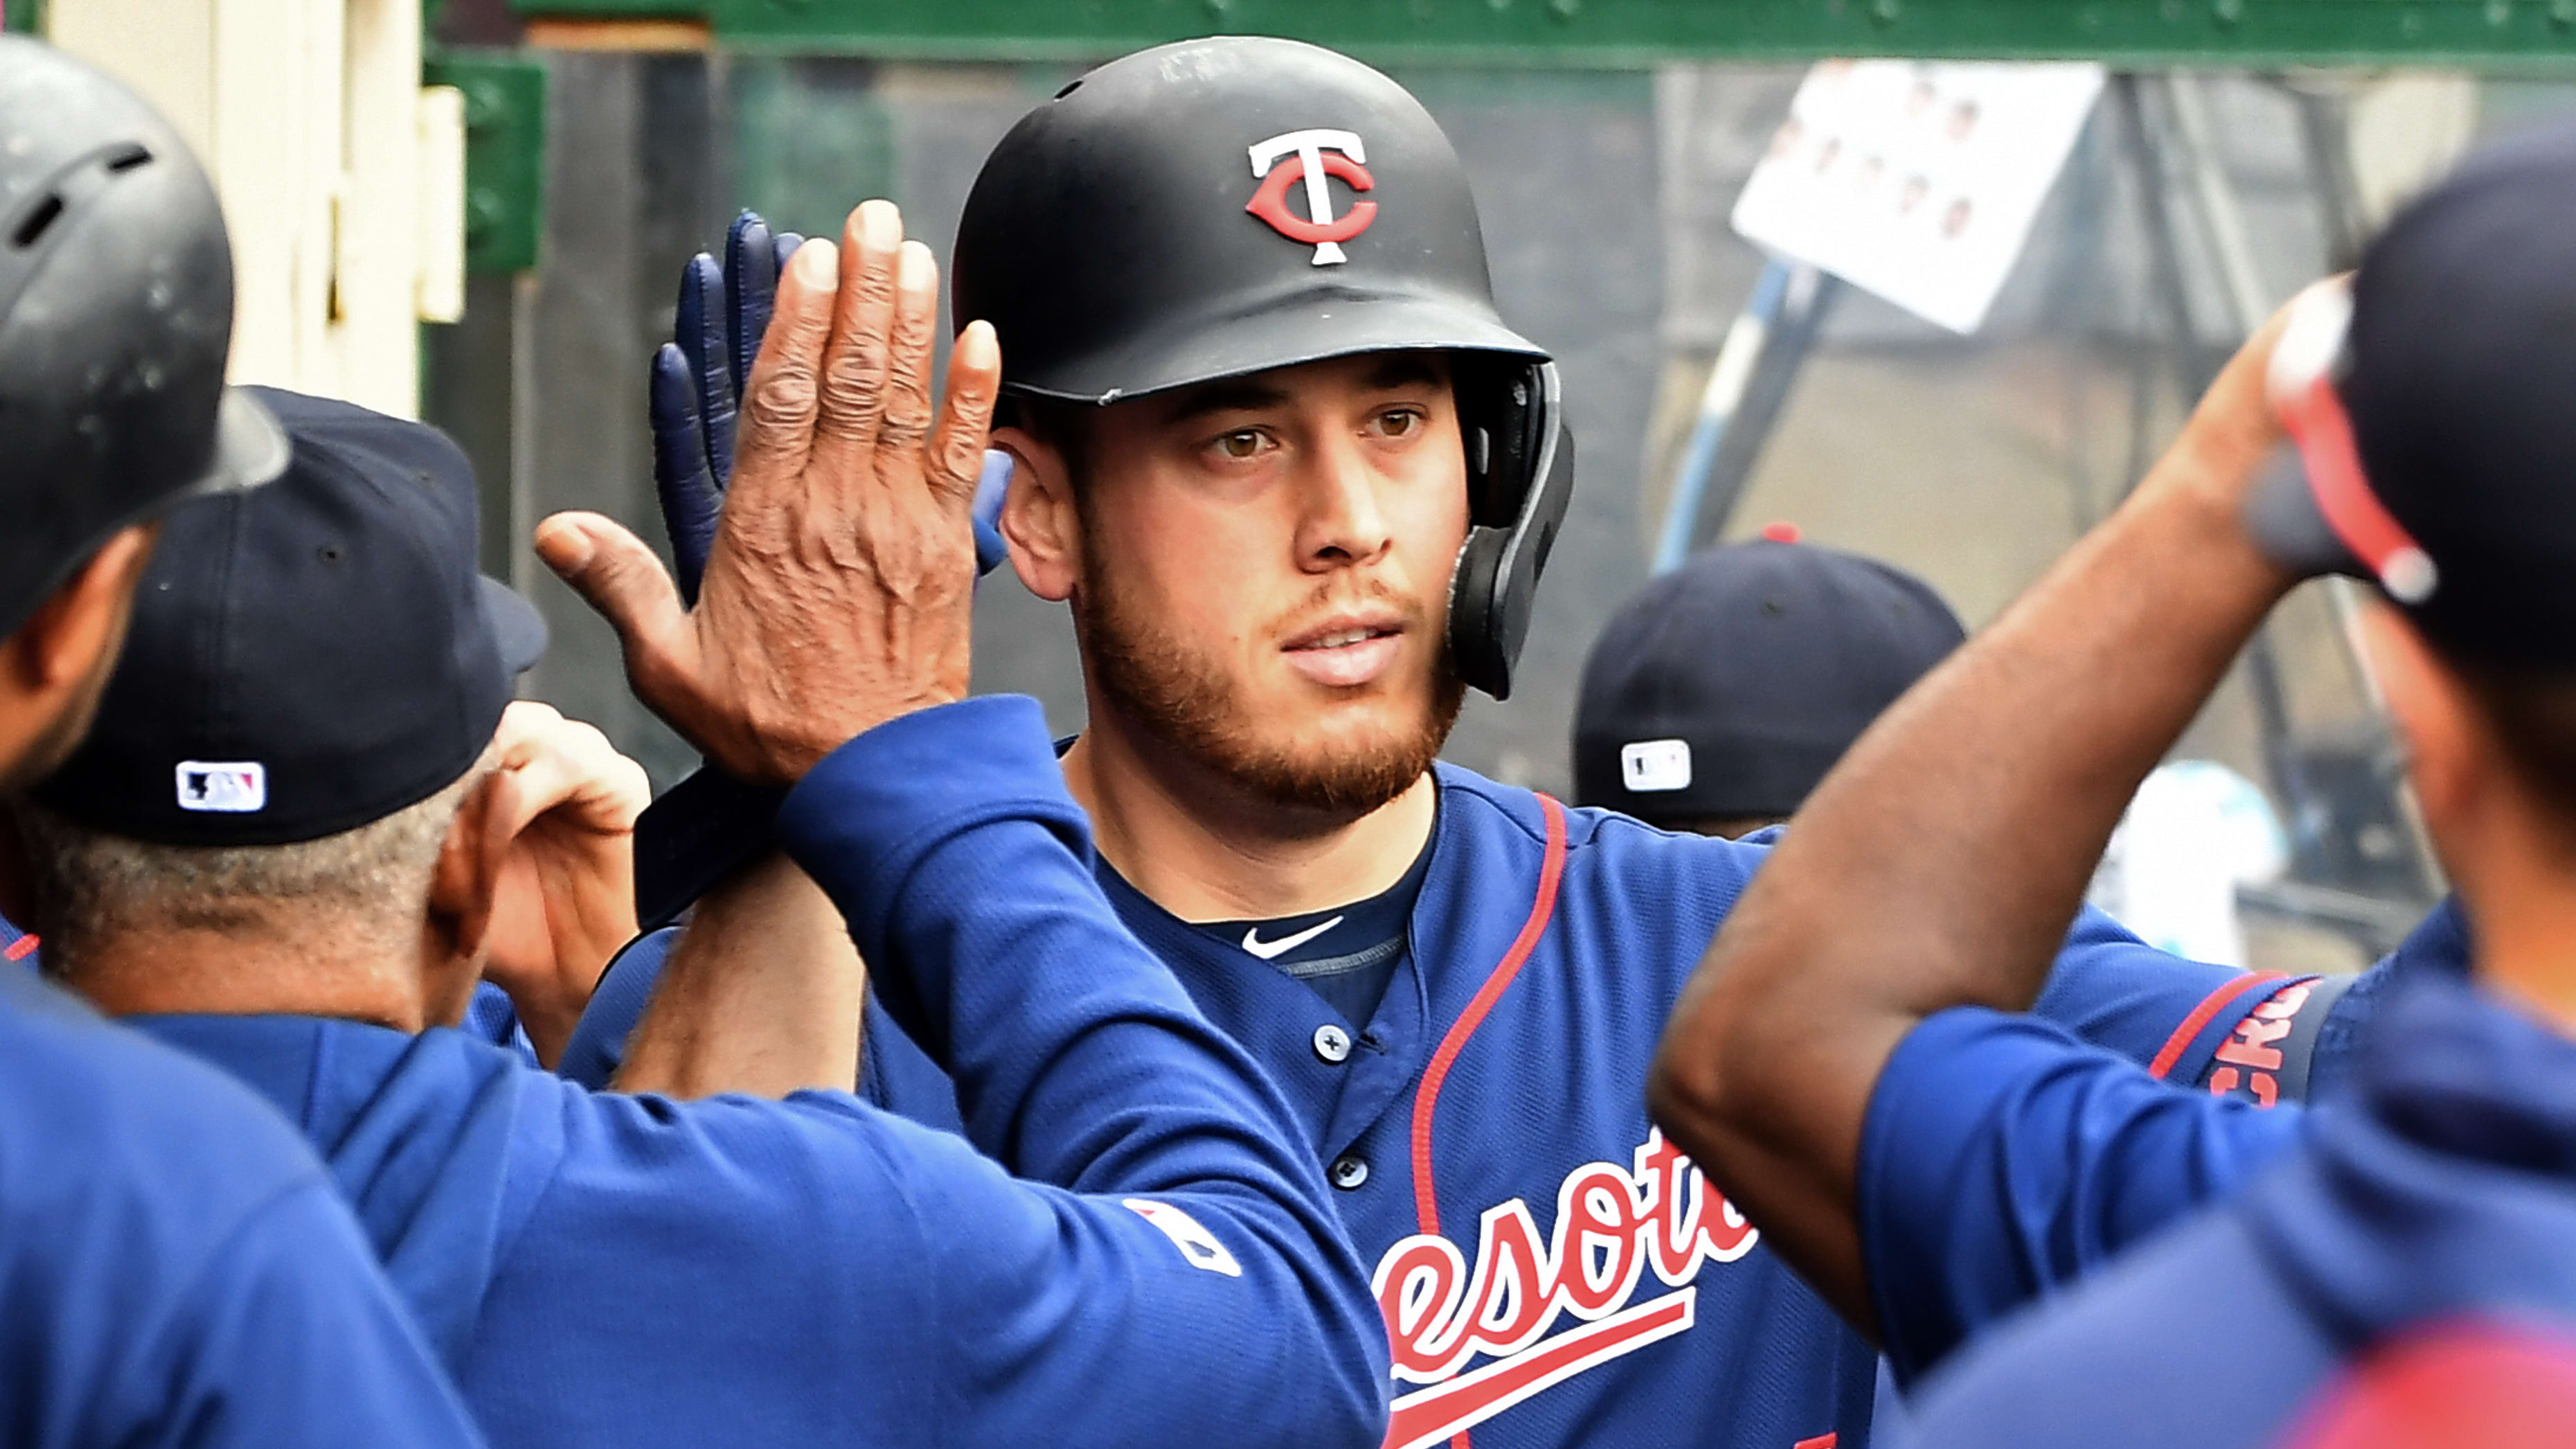 ANAHEIM, CA - MAY 23: C.J. Cron #24 of the Minnesota Twins is congratulated in the dugout after hitting a solo home run in the third inning against the Los Angeles Angels of Anaheim at Angel Stadium of Anaheim on May 23, 2019 in Anaheim, California. (Photo by Jayne Kamin-Oncea/Getty Images)